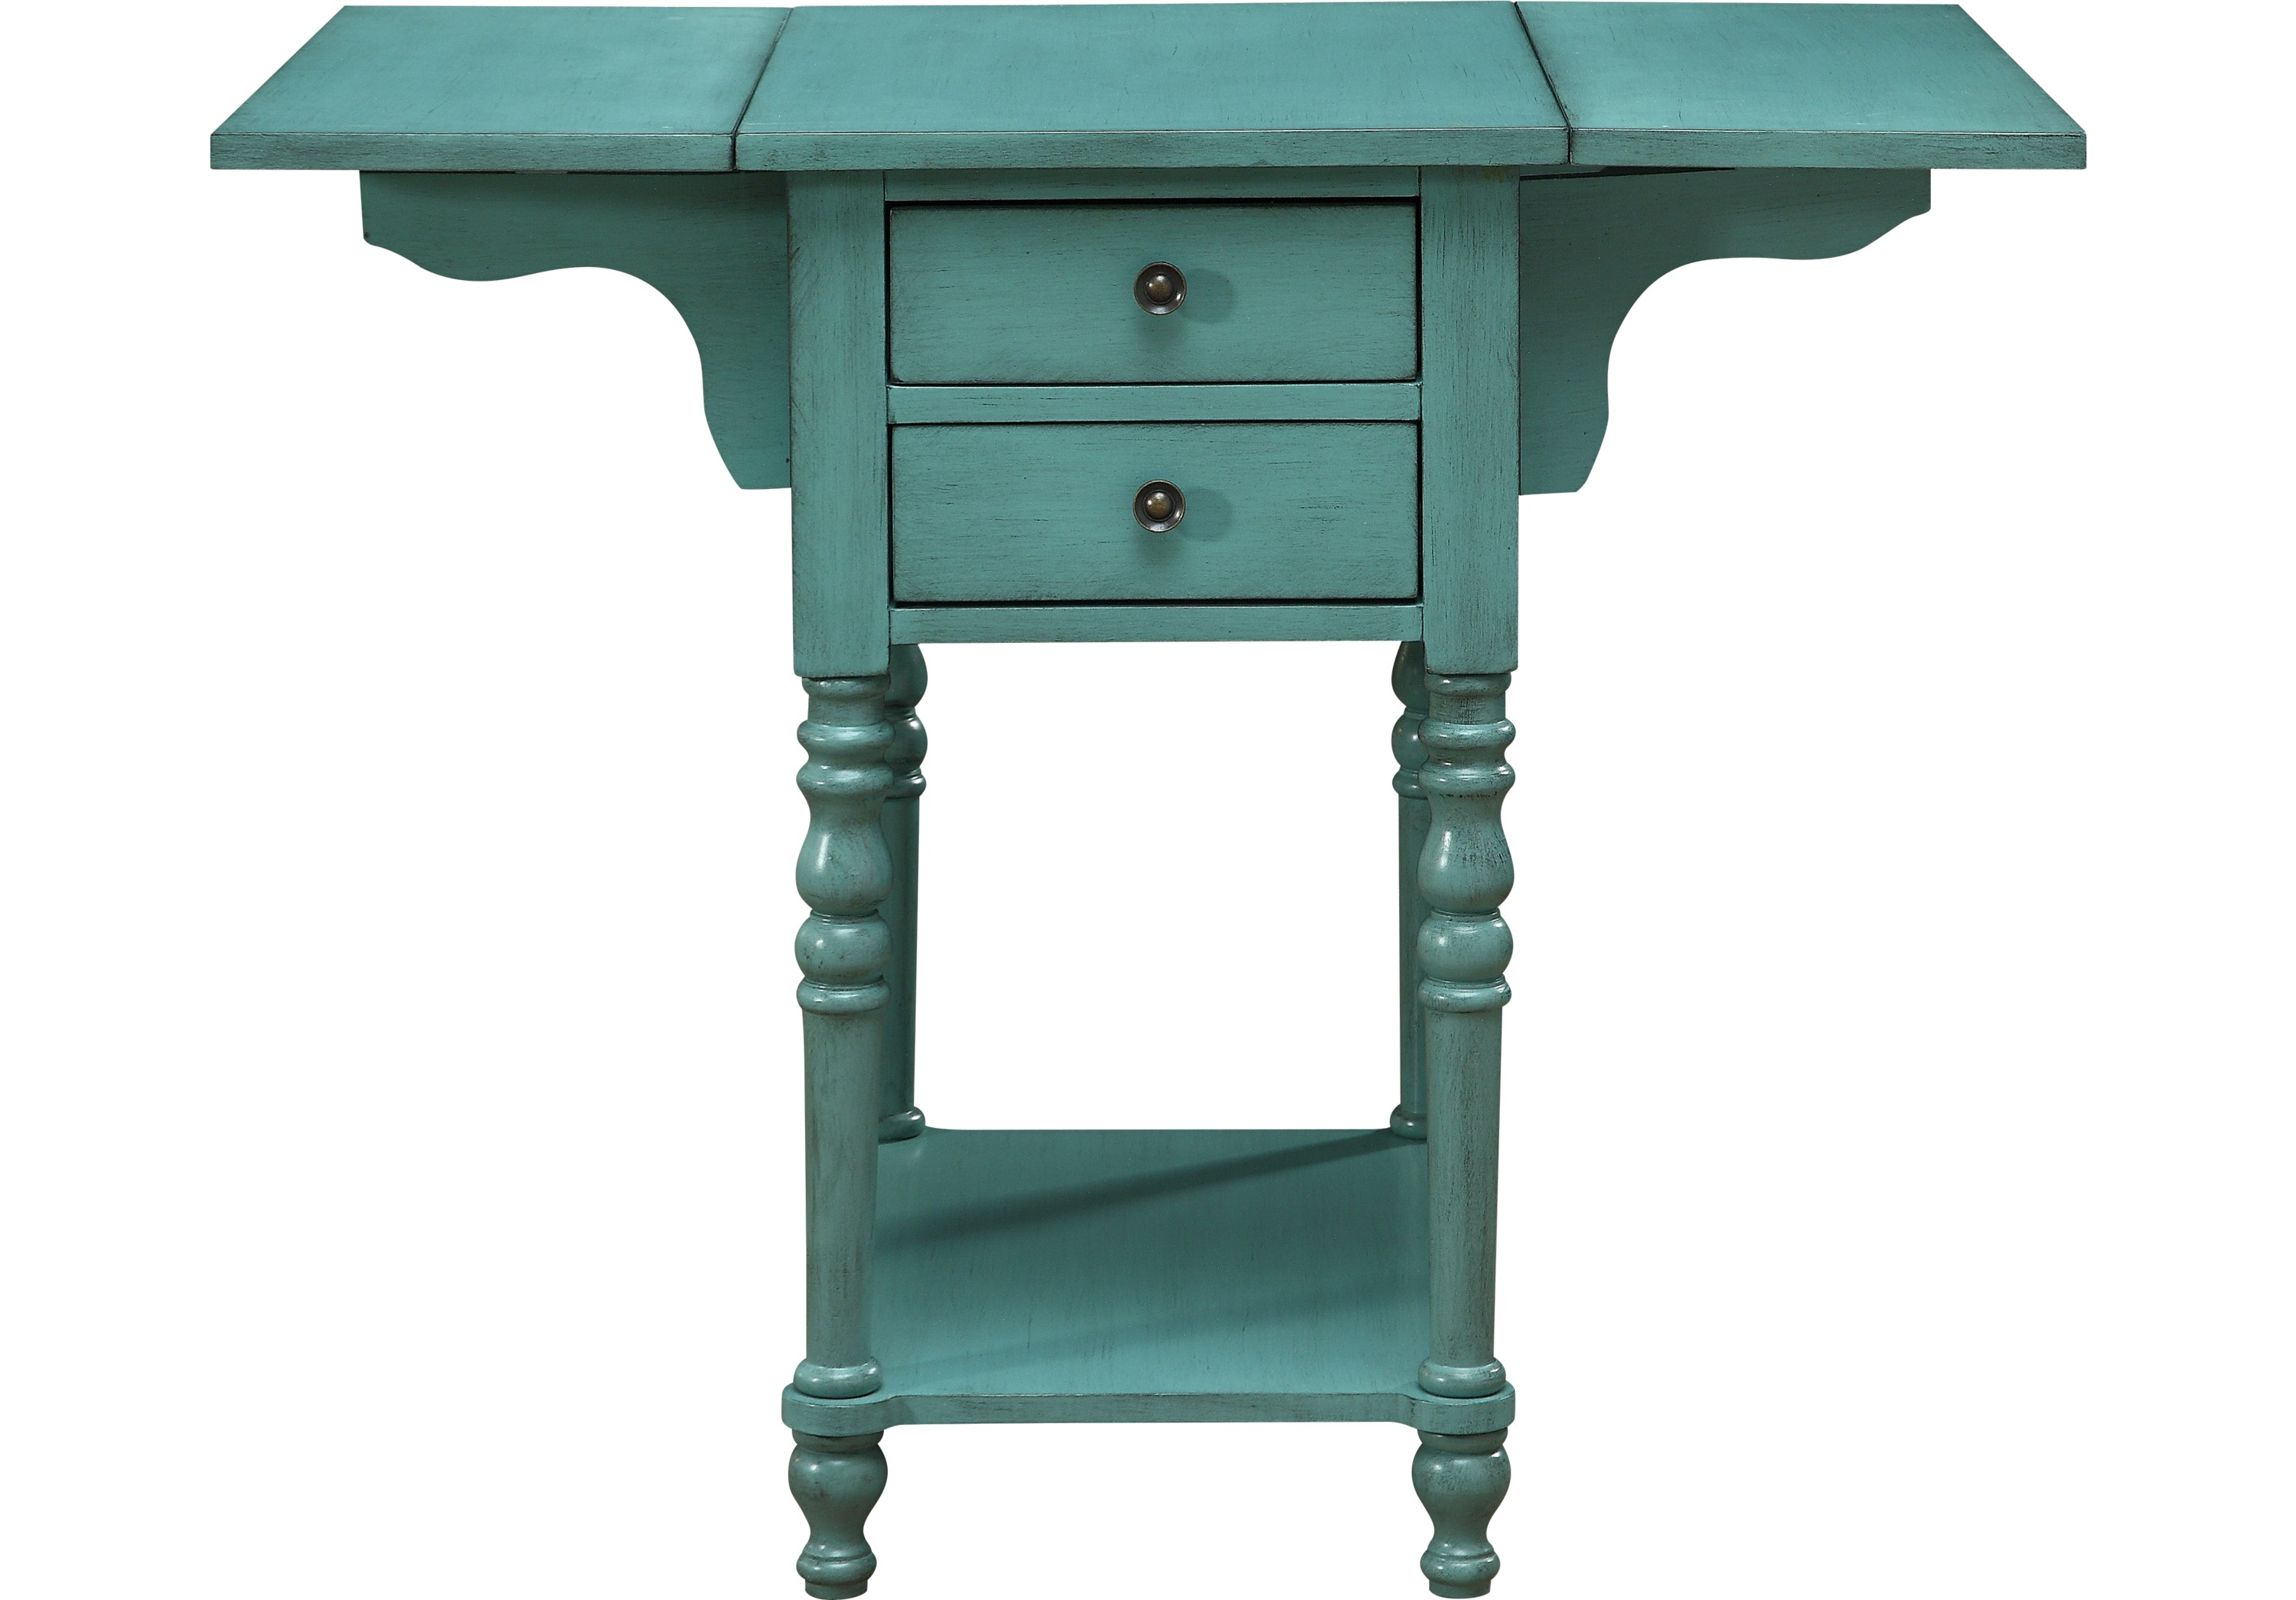 darcell green accent table tables colors product asian drum mango wood furniture dresser steinway seater patio set owings console martin home furnishings unfinished dining chairs